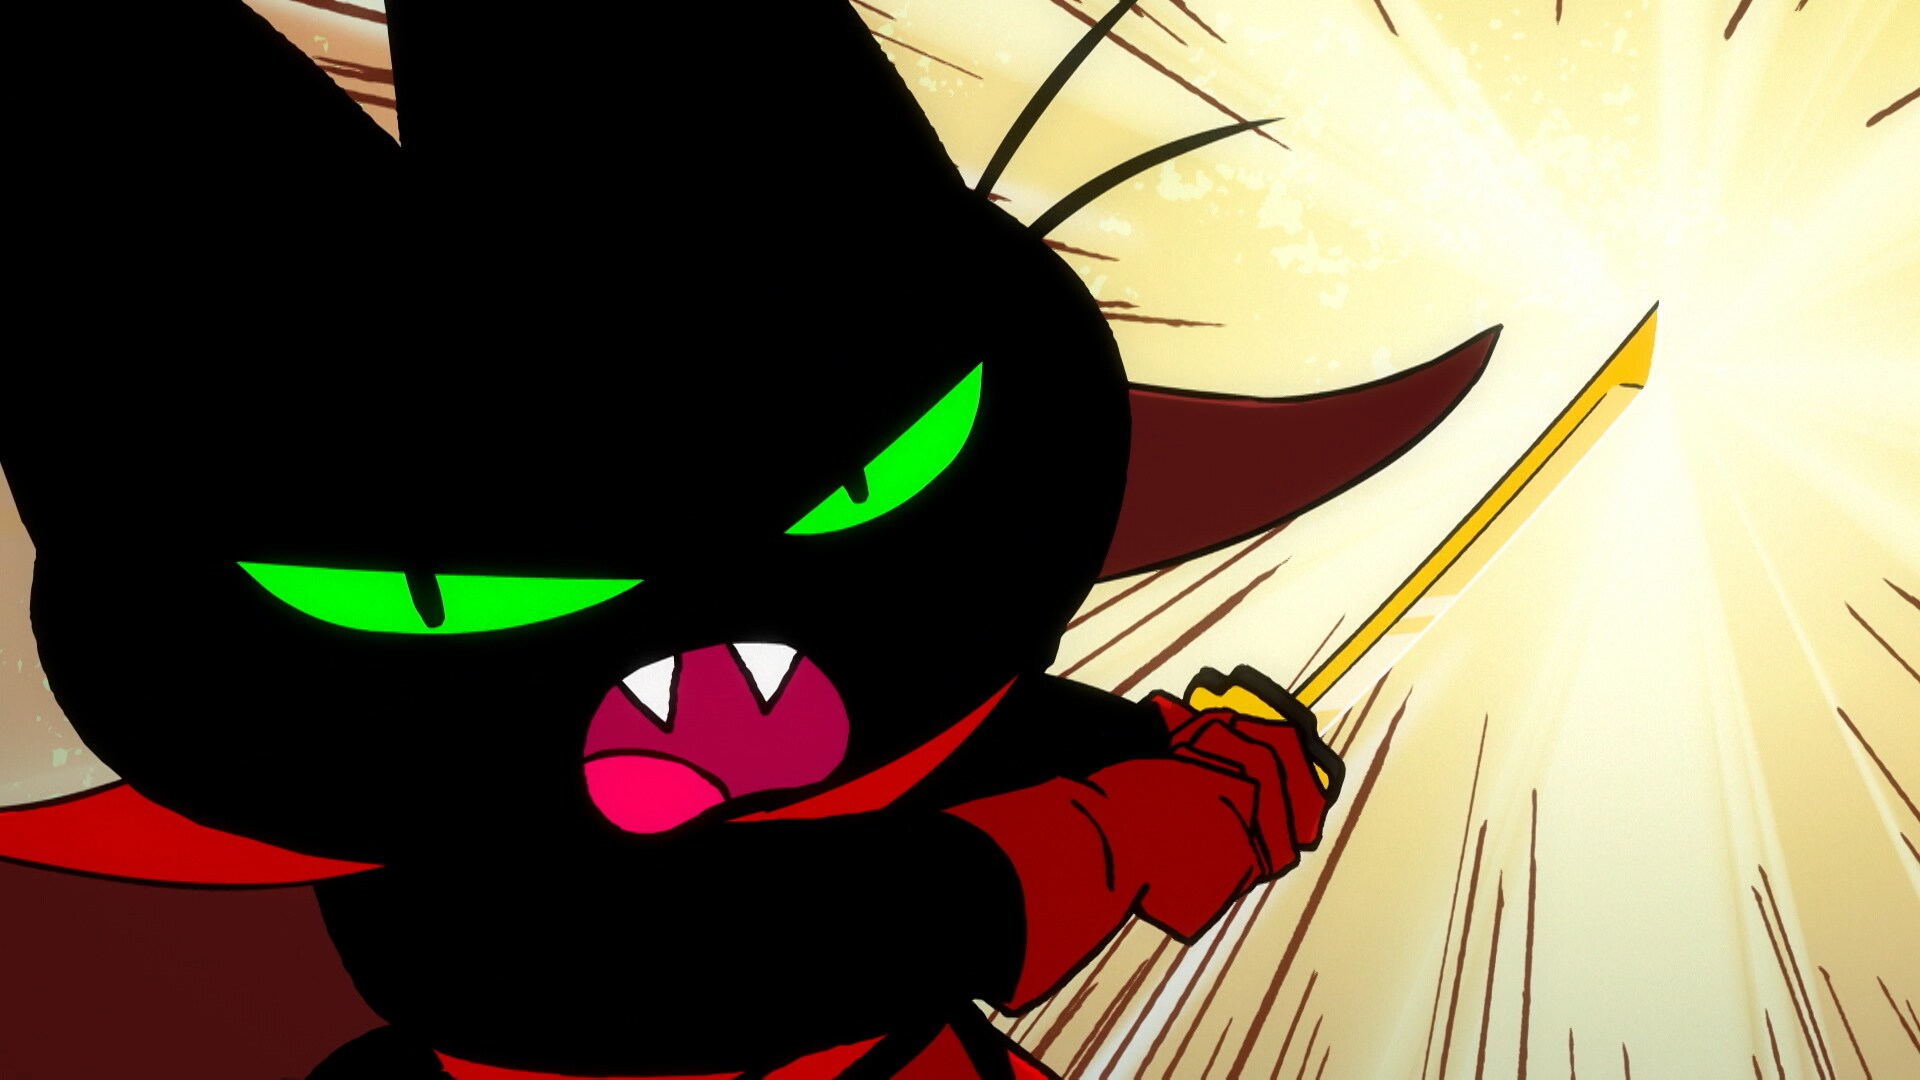 Mao Mao Heroes Of Pure Heart Meet Mao Mao The Heroic Cat In These Great Games And Videos Cartoon Network Here are all of adorabat wants to have super powers like mao mao and badgerclops, so the guys decide to give her. mao mao heroes of pure heart meet